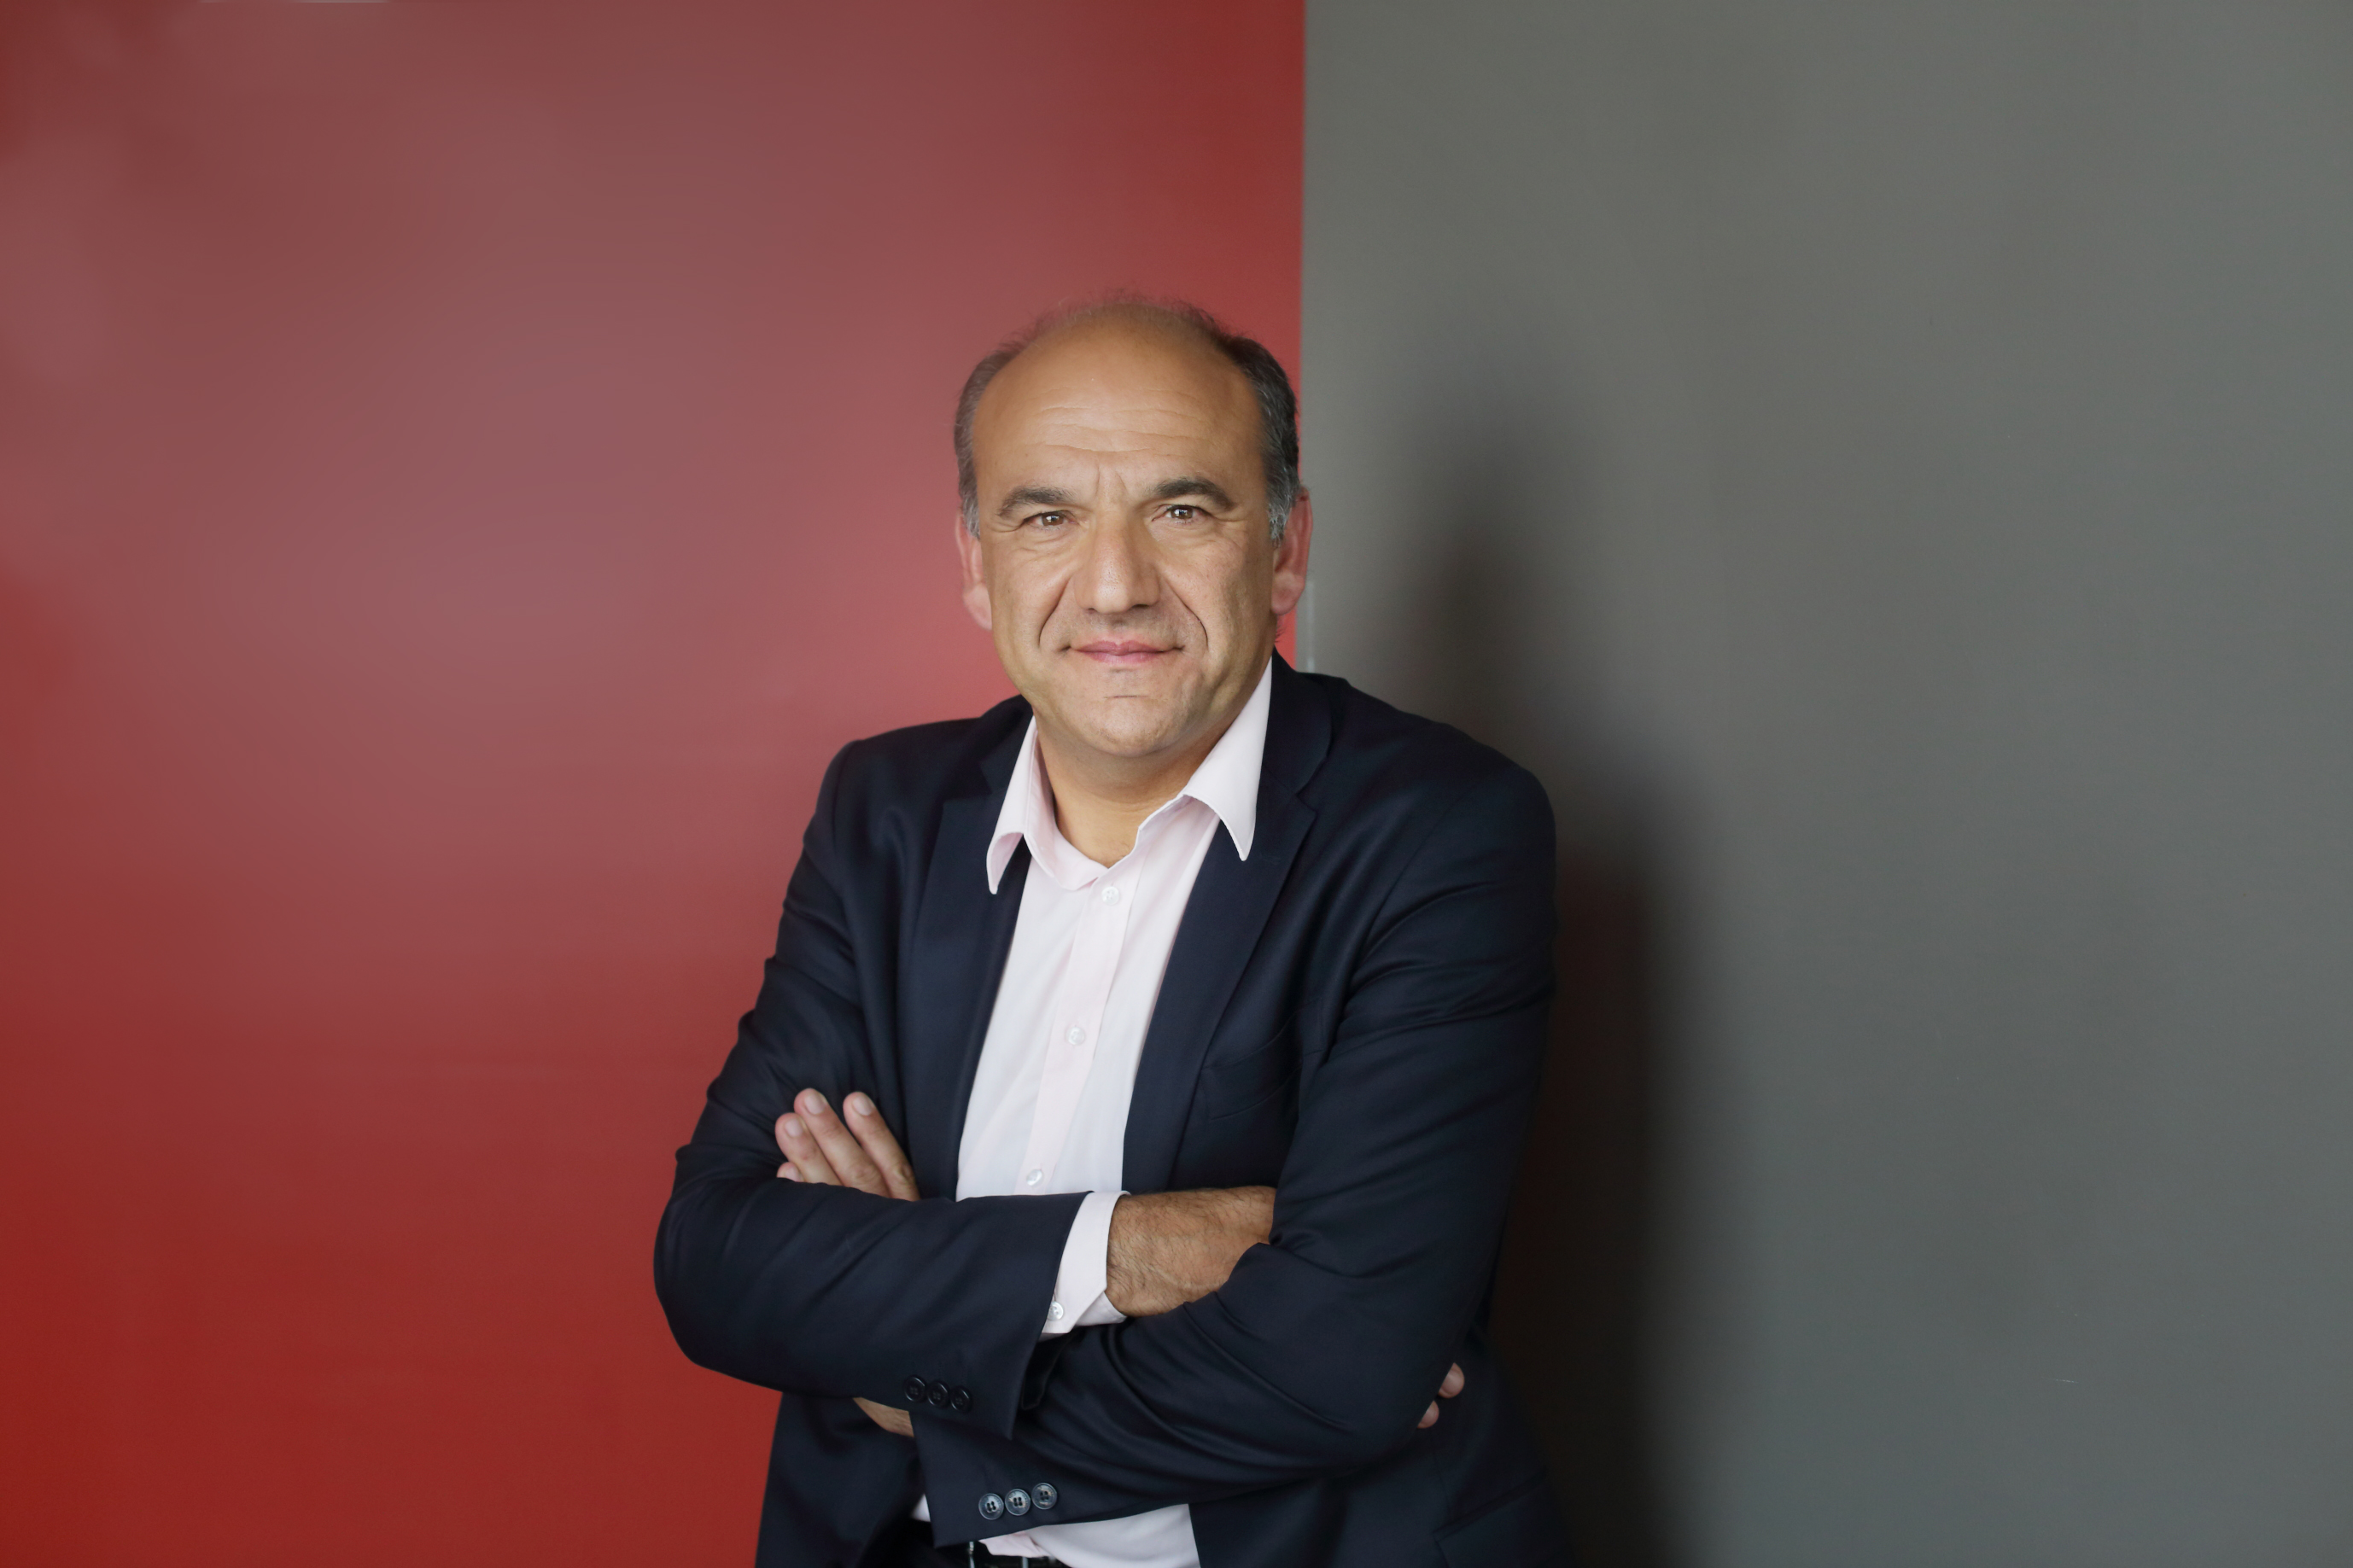 Christophe Carniel, founder of Netia and Vogo, President of Transferts LR